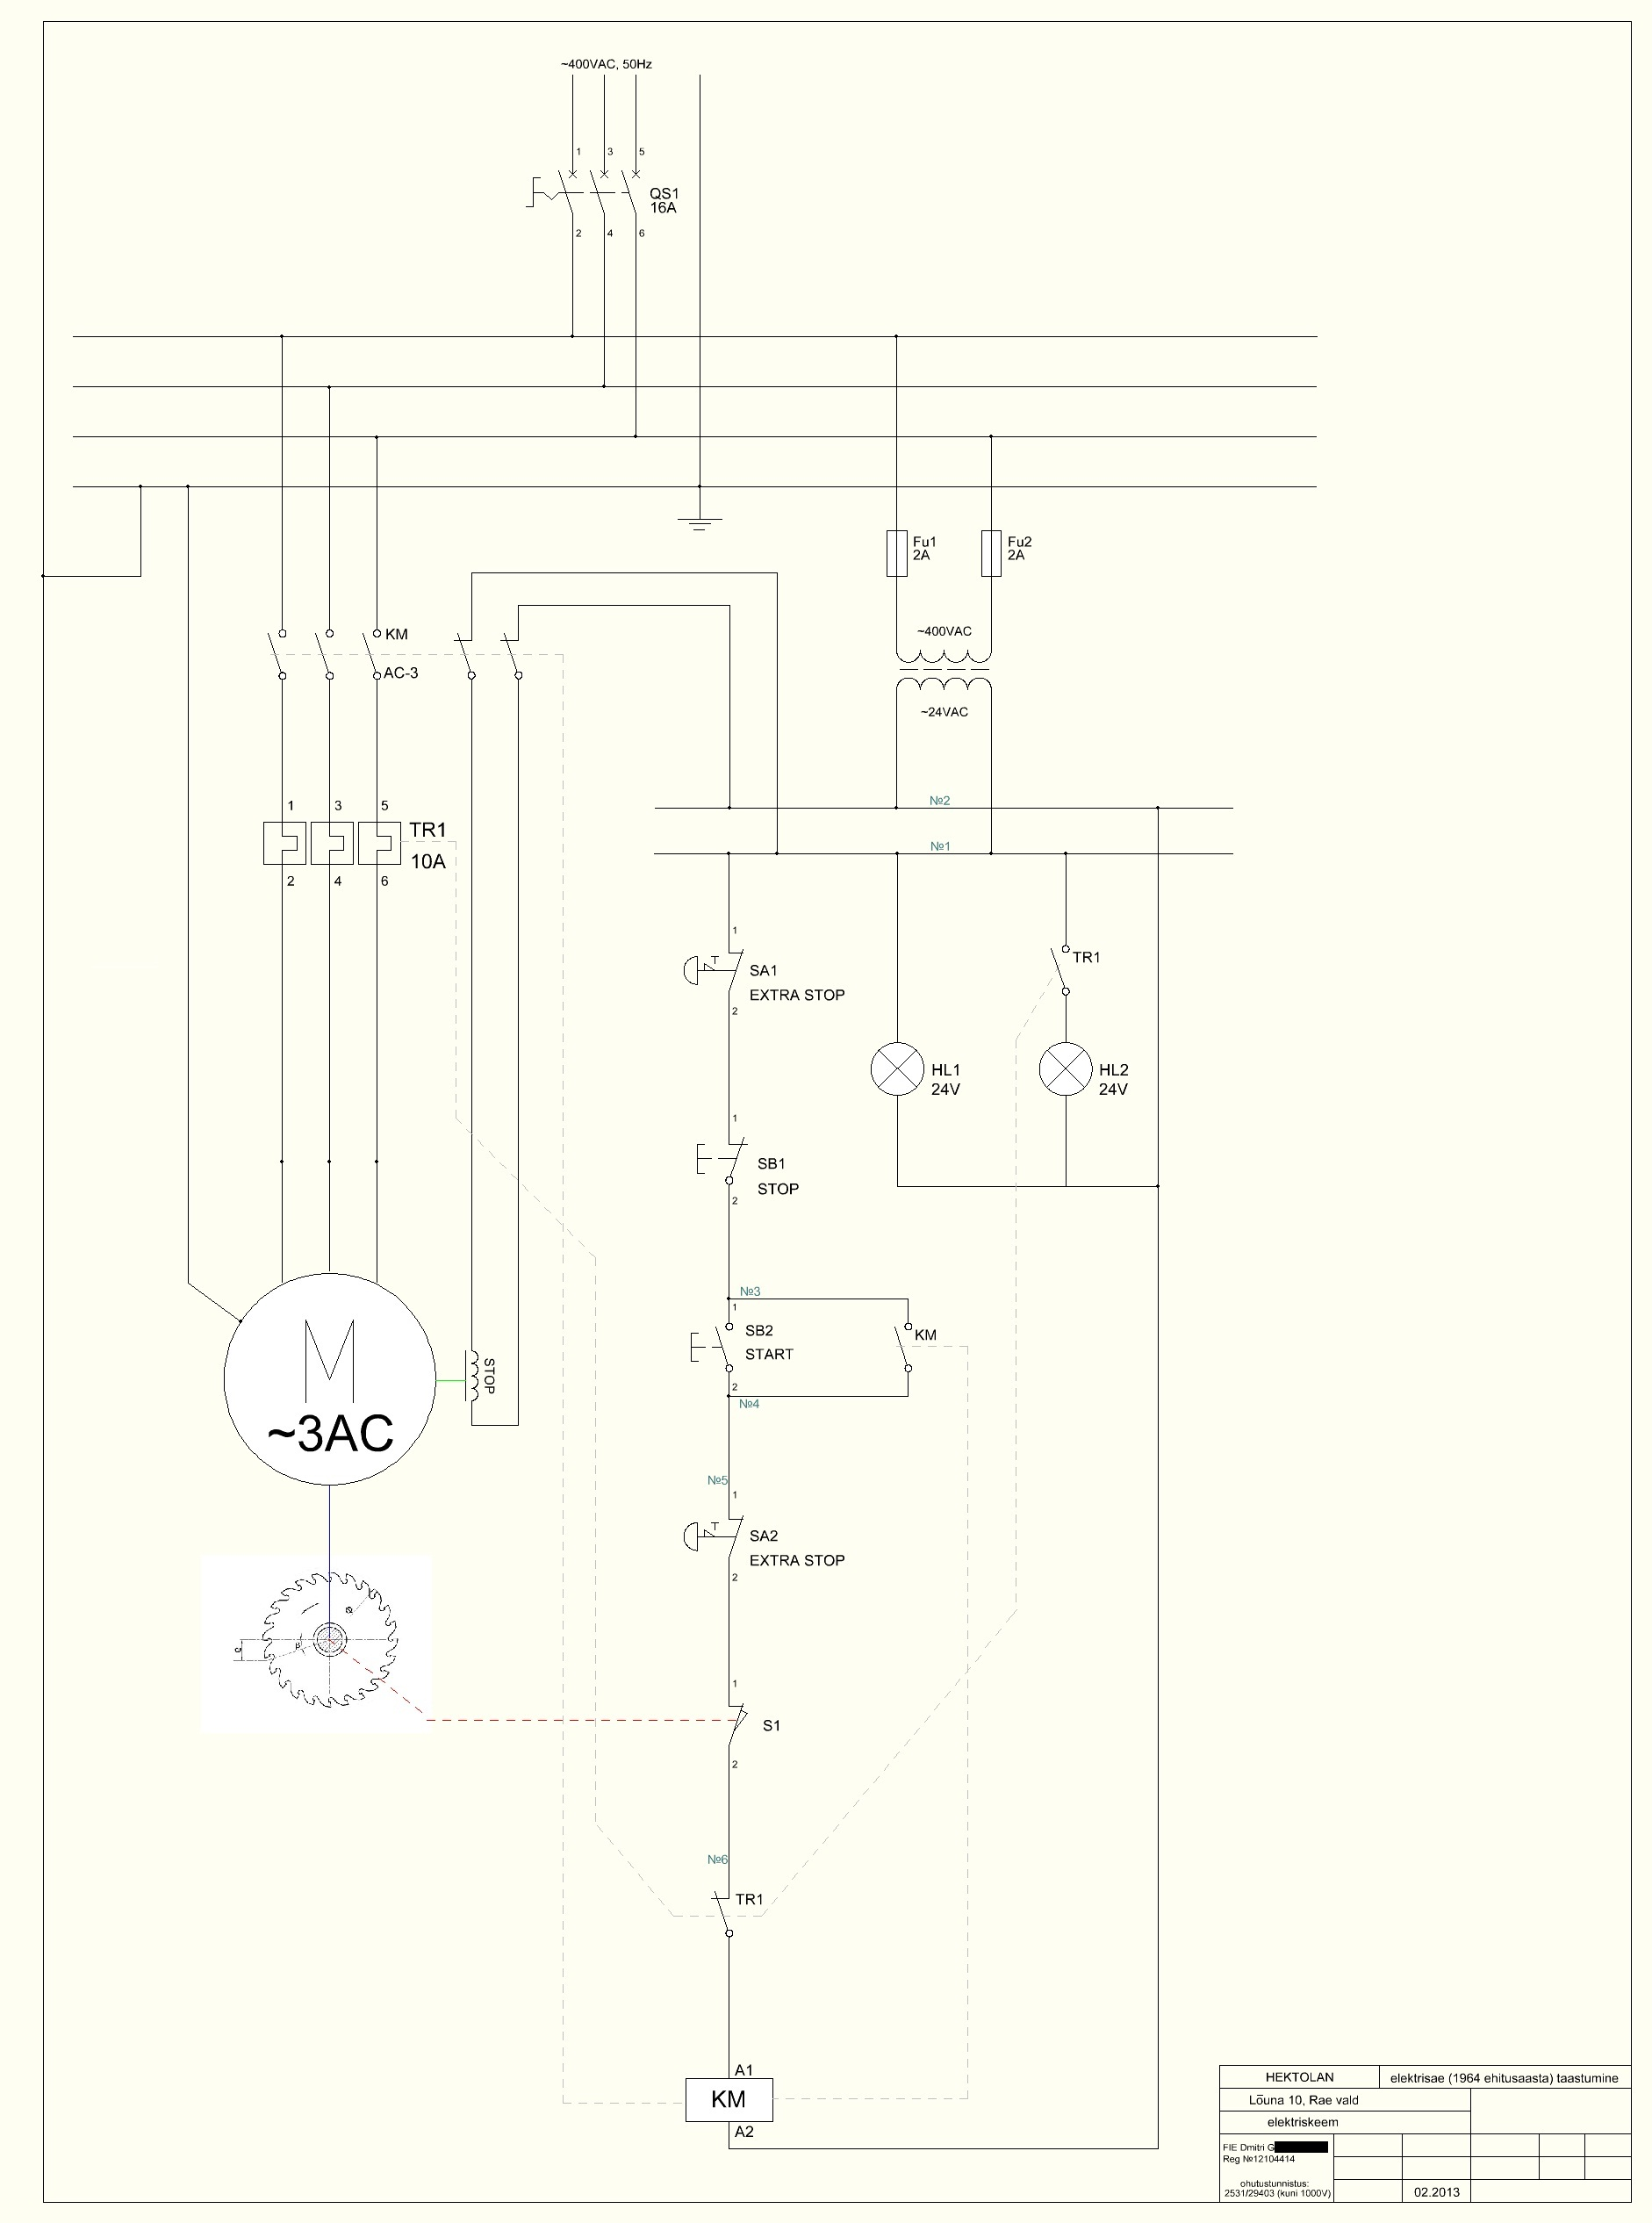 4 way switch wiring diagram for a circular saw wrg 1615  4 way switch wiring diagram for a circular saw  switch wiring diagram for a circular saw